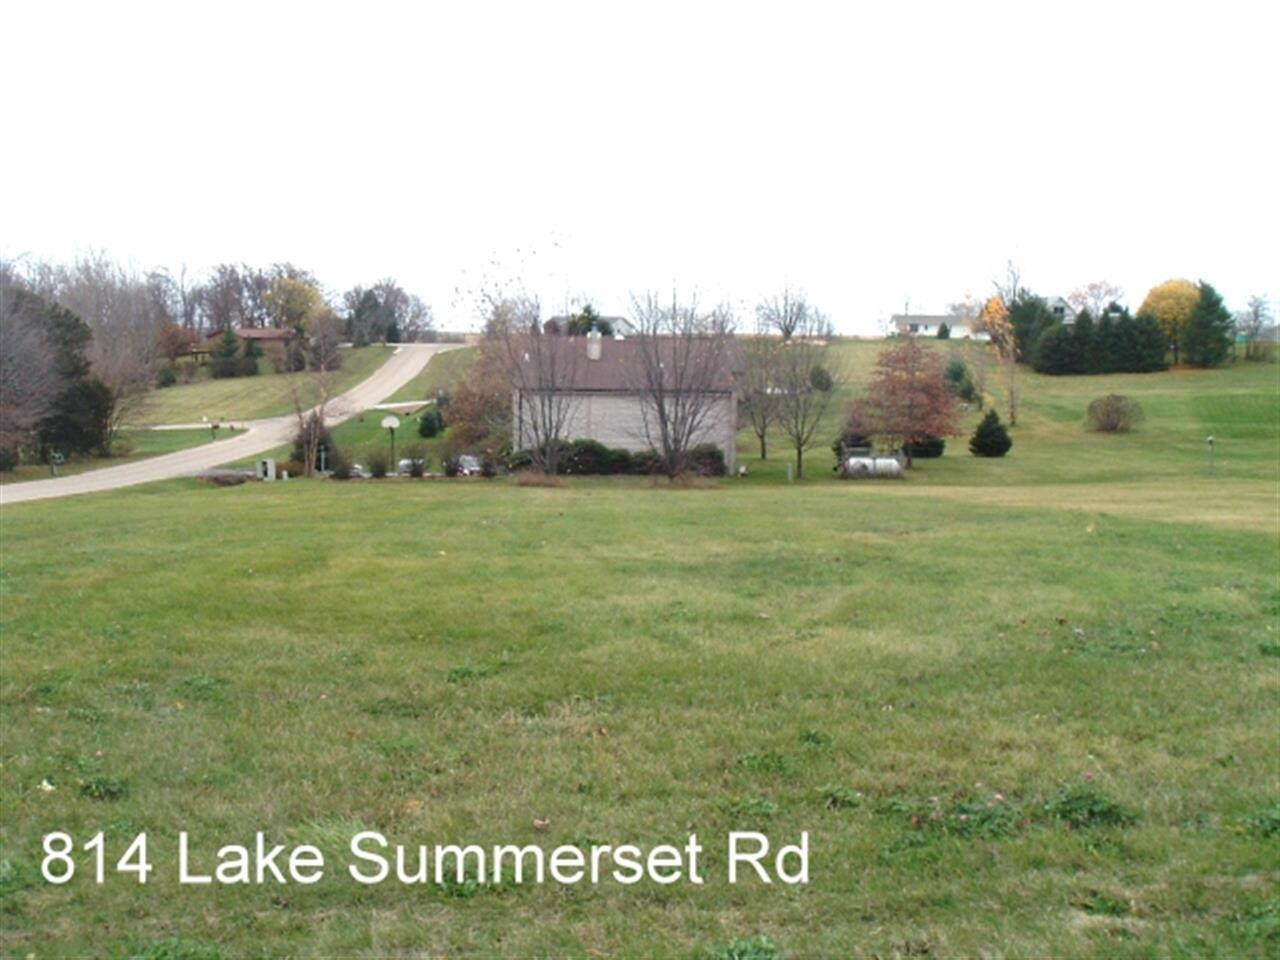 814 LAKE SUMMERSET, LAKE SUMMERSET, IL 61019